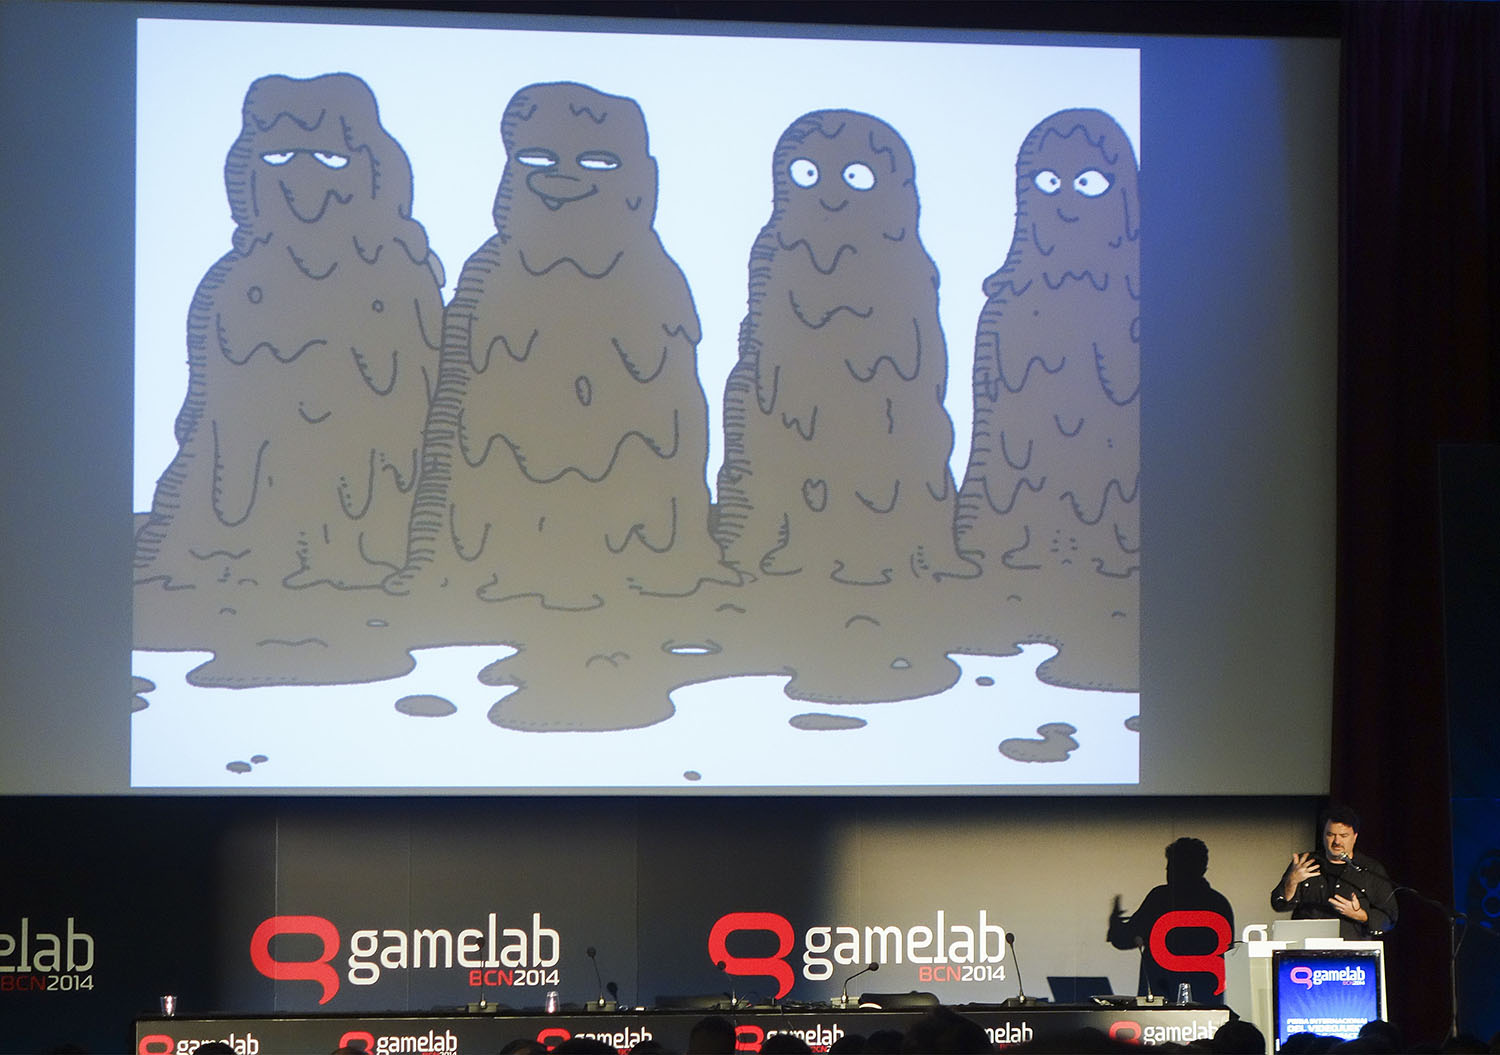 Tim Schafer encouraging and amusing the audience